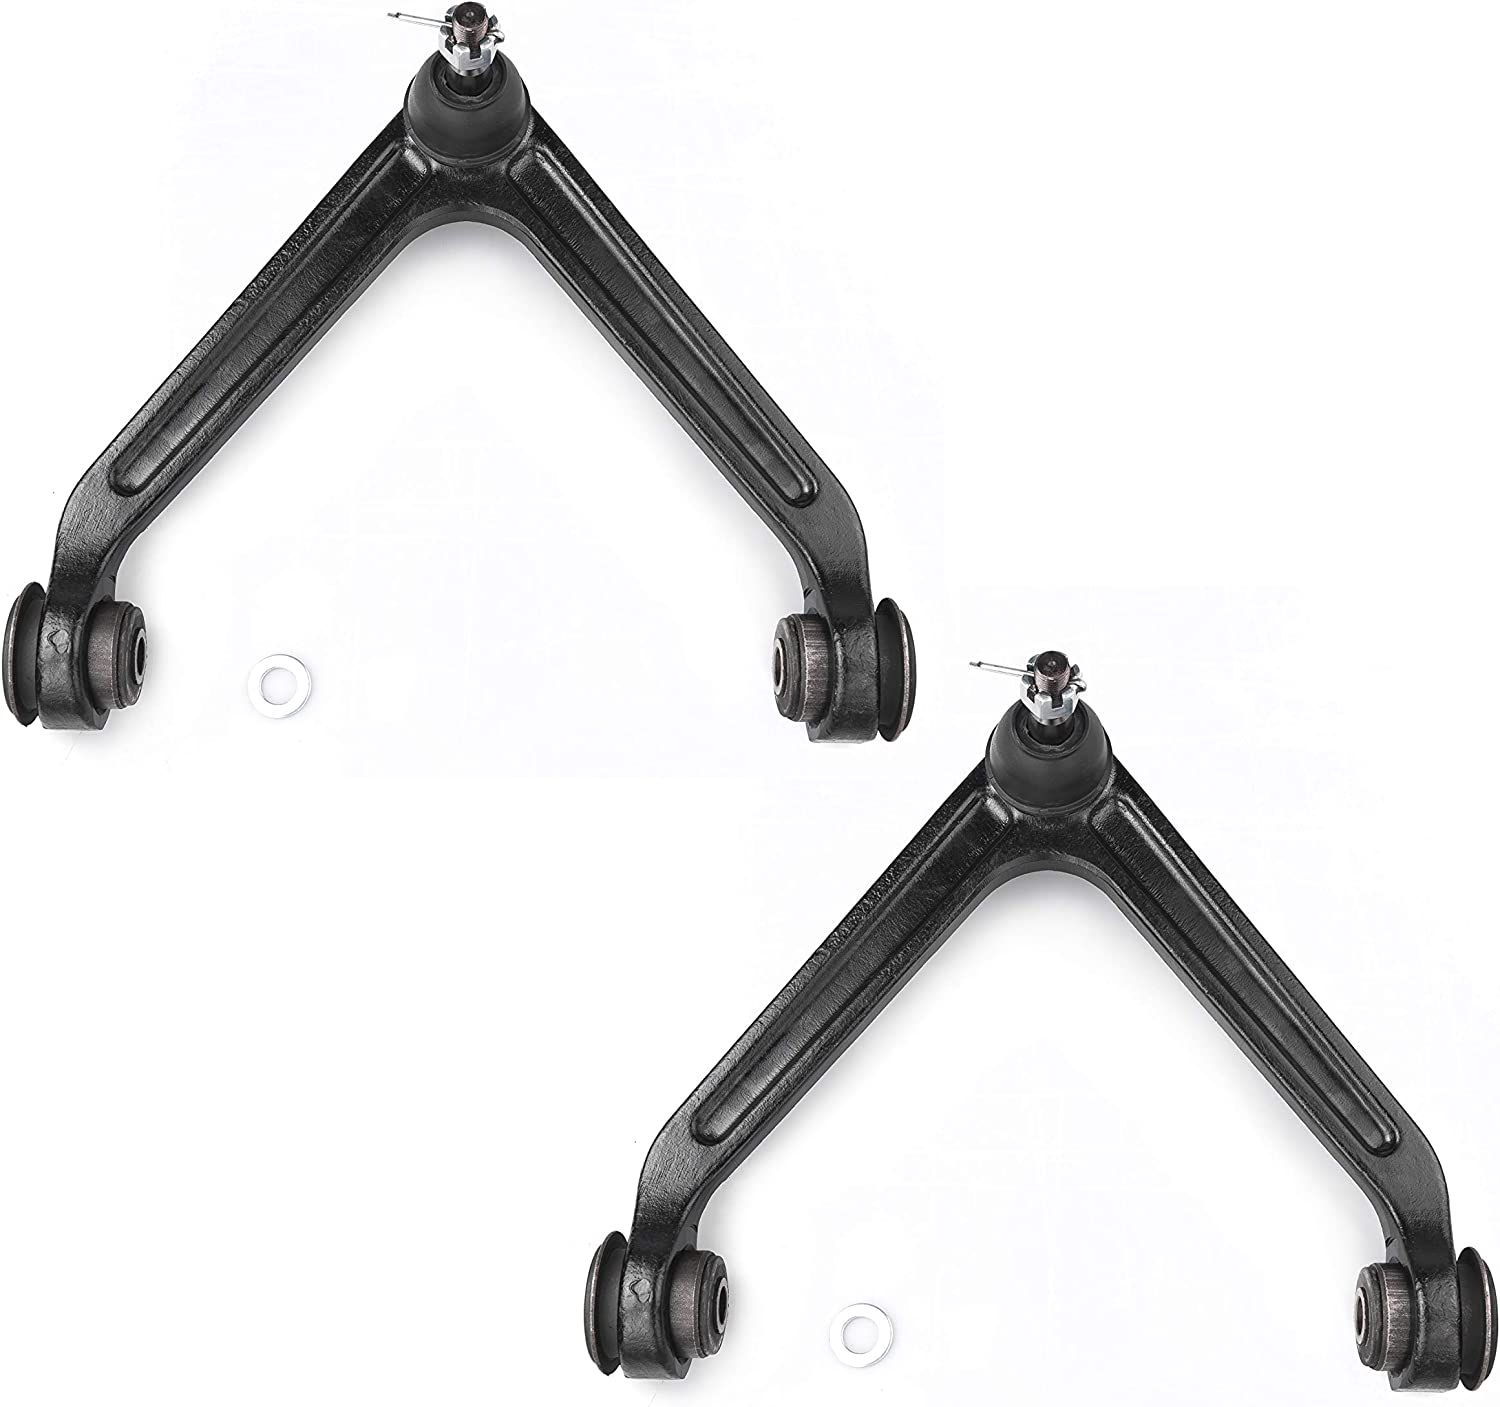 ADIGARAUTO K7424 1PC Front Upper Control Arm Ball Joint Assembly Compatible with 2002 2003 2004 2005 Dodge Ram 1500 2007 2008 2009 Chrysler Aspen 2004 2005 2006 2007 2008 2009 Dodge Durango